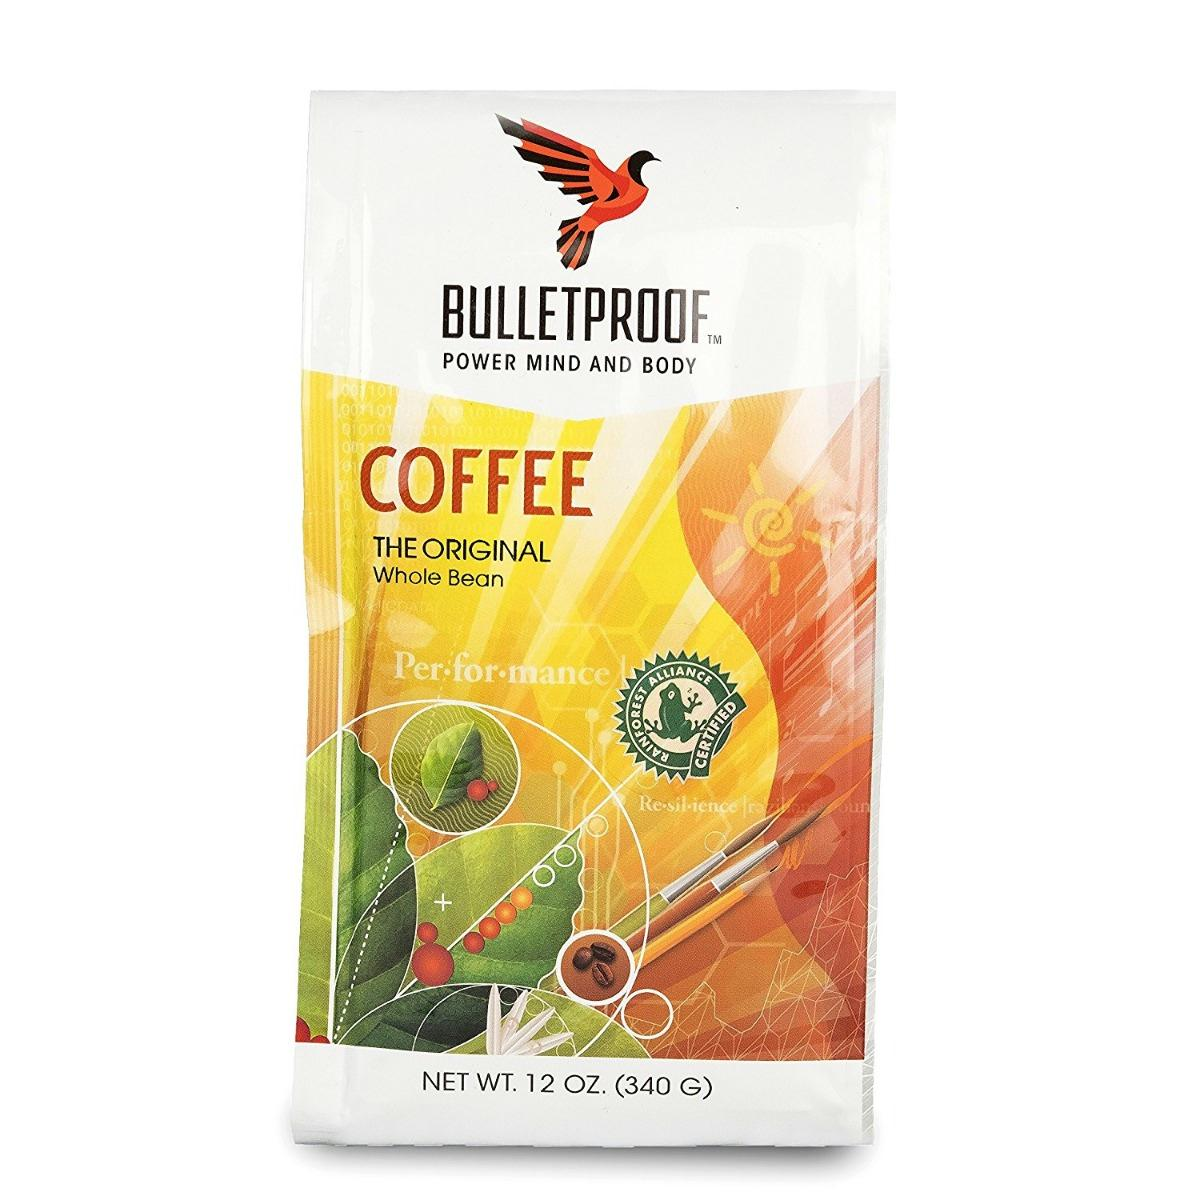 Bulletproof: Coffee Whole Bean, 12 Oz